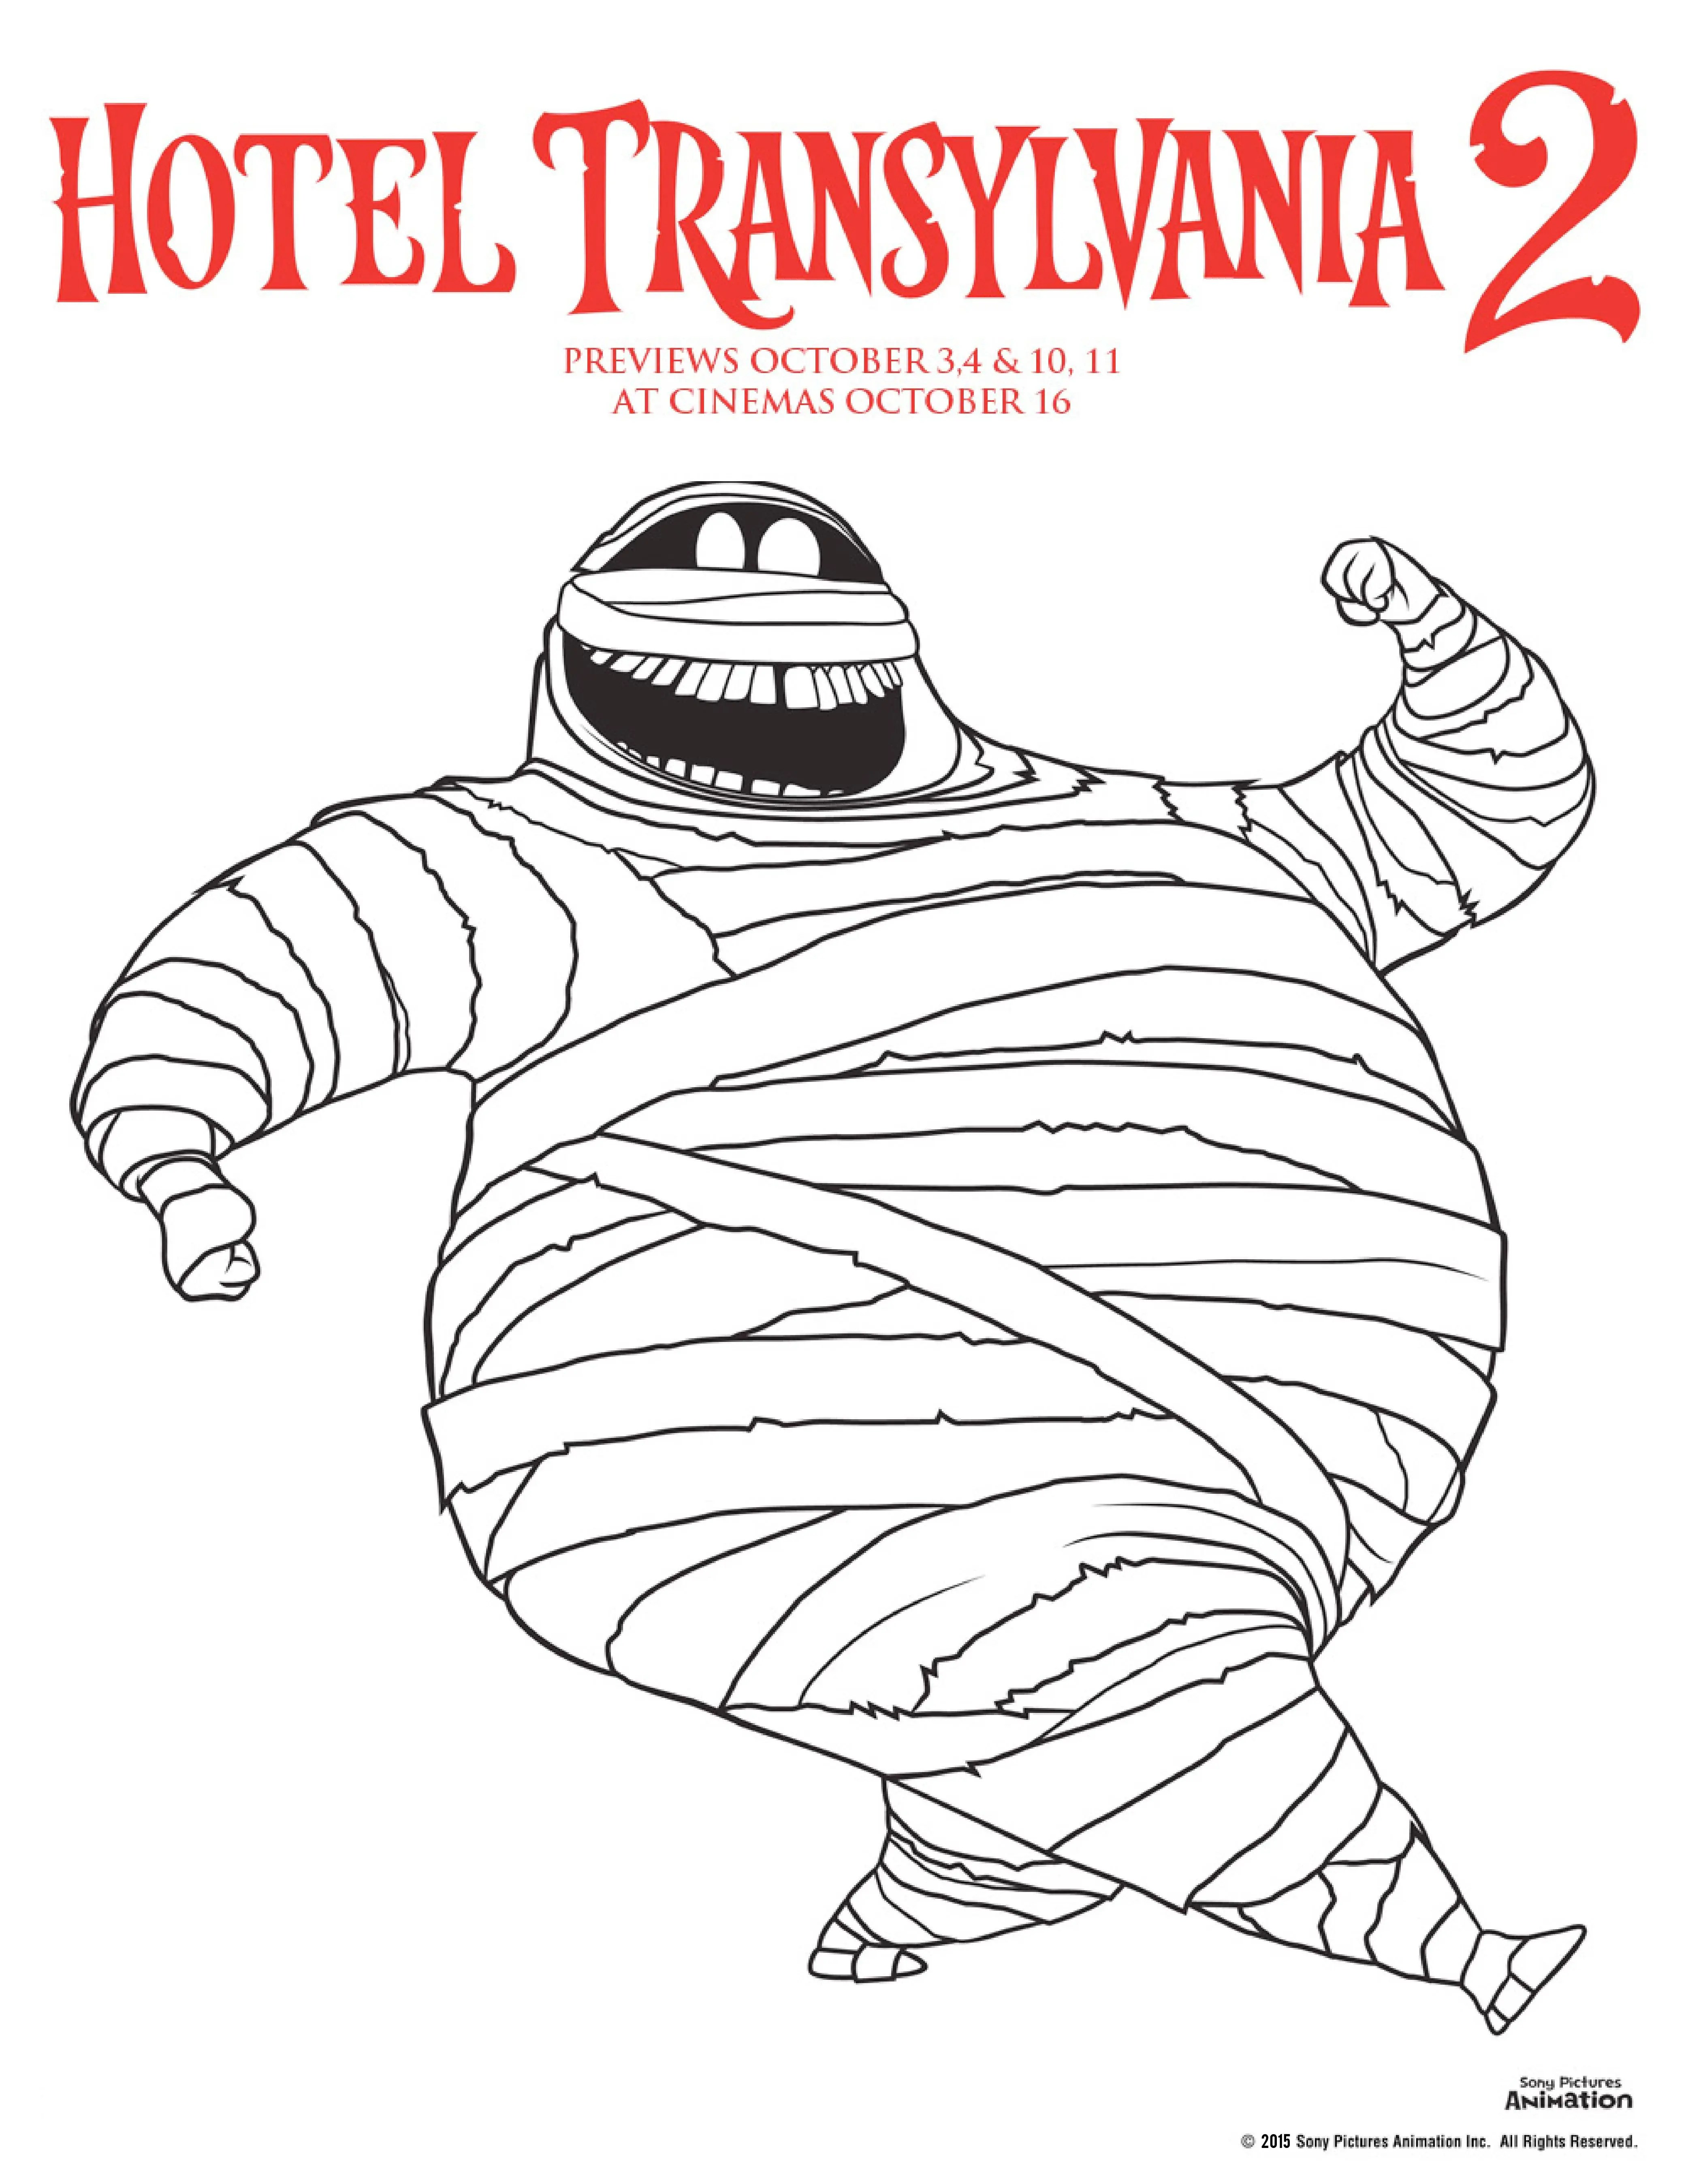 Hotel transylvania 2 colouring pages murray the mummy colouring sheet, perfect for Halloween